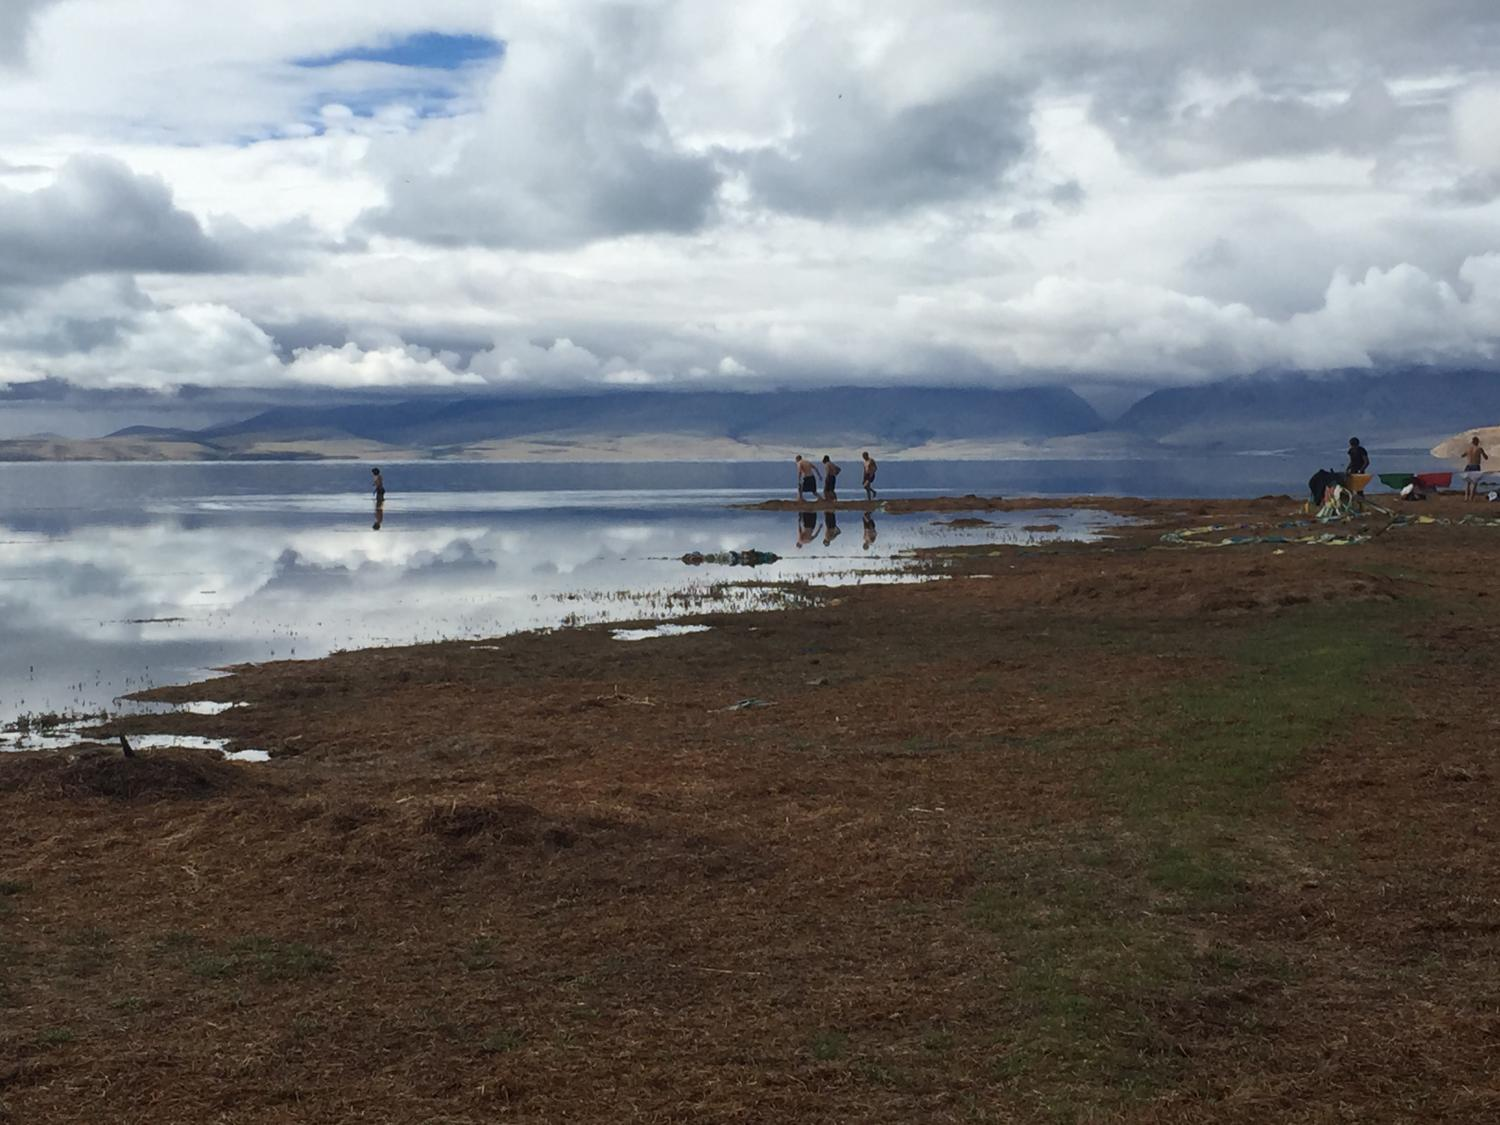 heading for a dip in Manasarovar